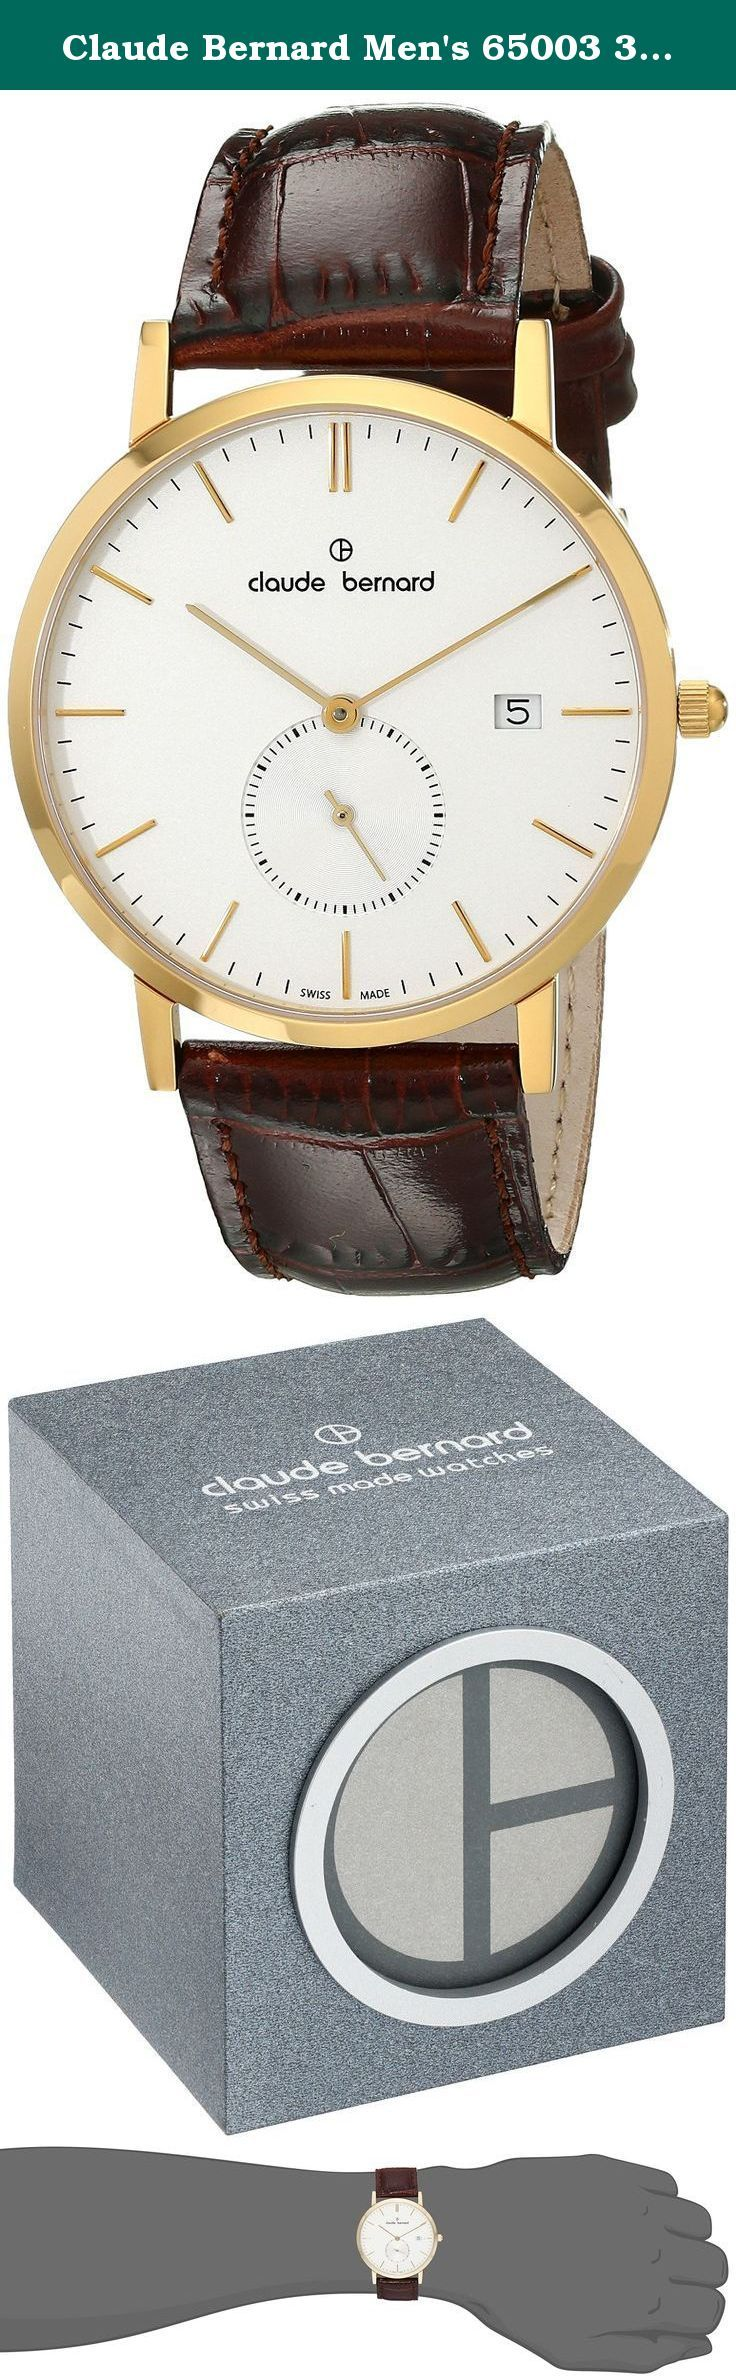 Claude Bernard Men's 65003 37J AID Classic Small Second Analog Display Swiss Quartz Brown Watch. This Swiss Made Claude Bernard dress watch features an easy-to-read white dial with a small seconds sub-dial at 6:00 on the dial. Gold tone hands and hour markers display the time. The watch is powered by a Swiss Ronda 6004.D quartz movement so you are always on time for an appointment. The 40mm stainless steel case is only 8mm thick, so it easily slides under a shirt cuff. This watch will…